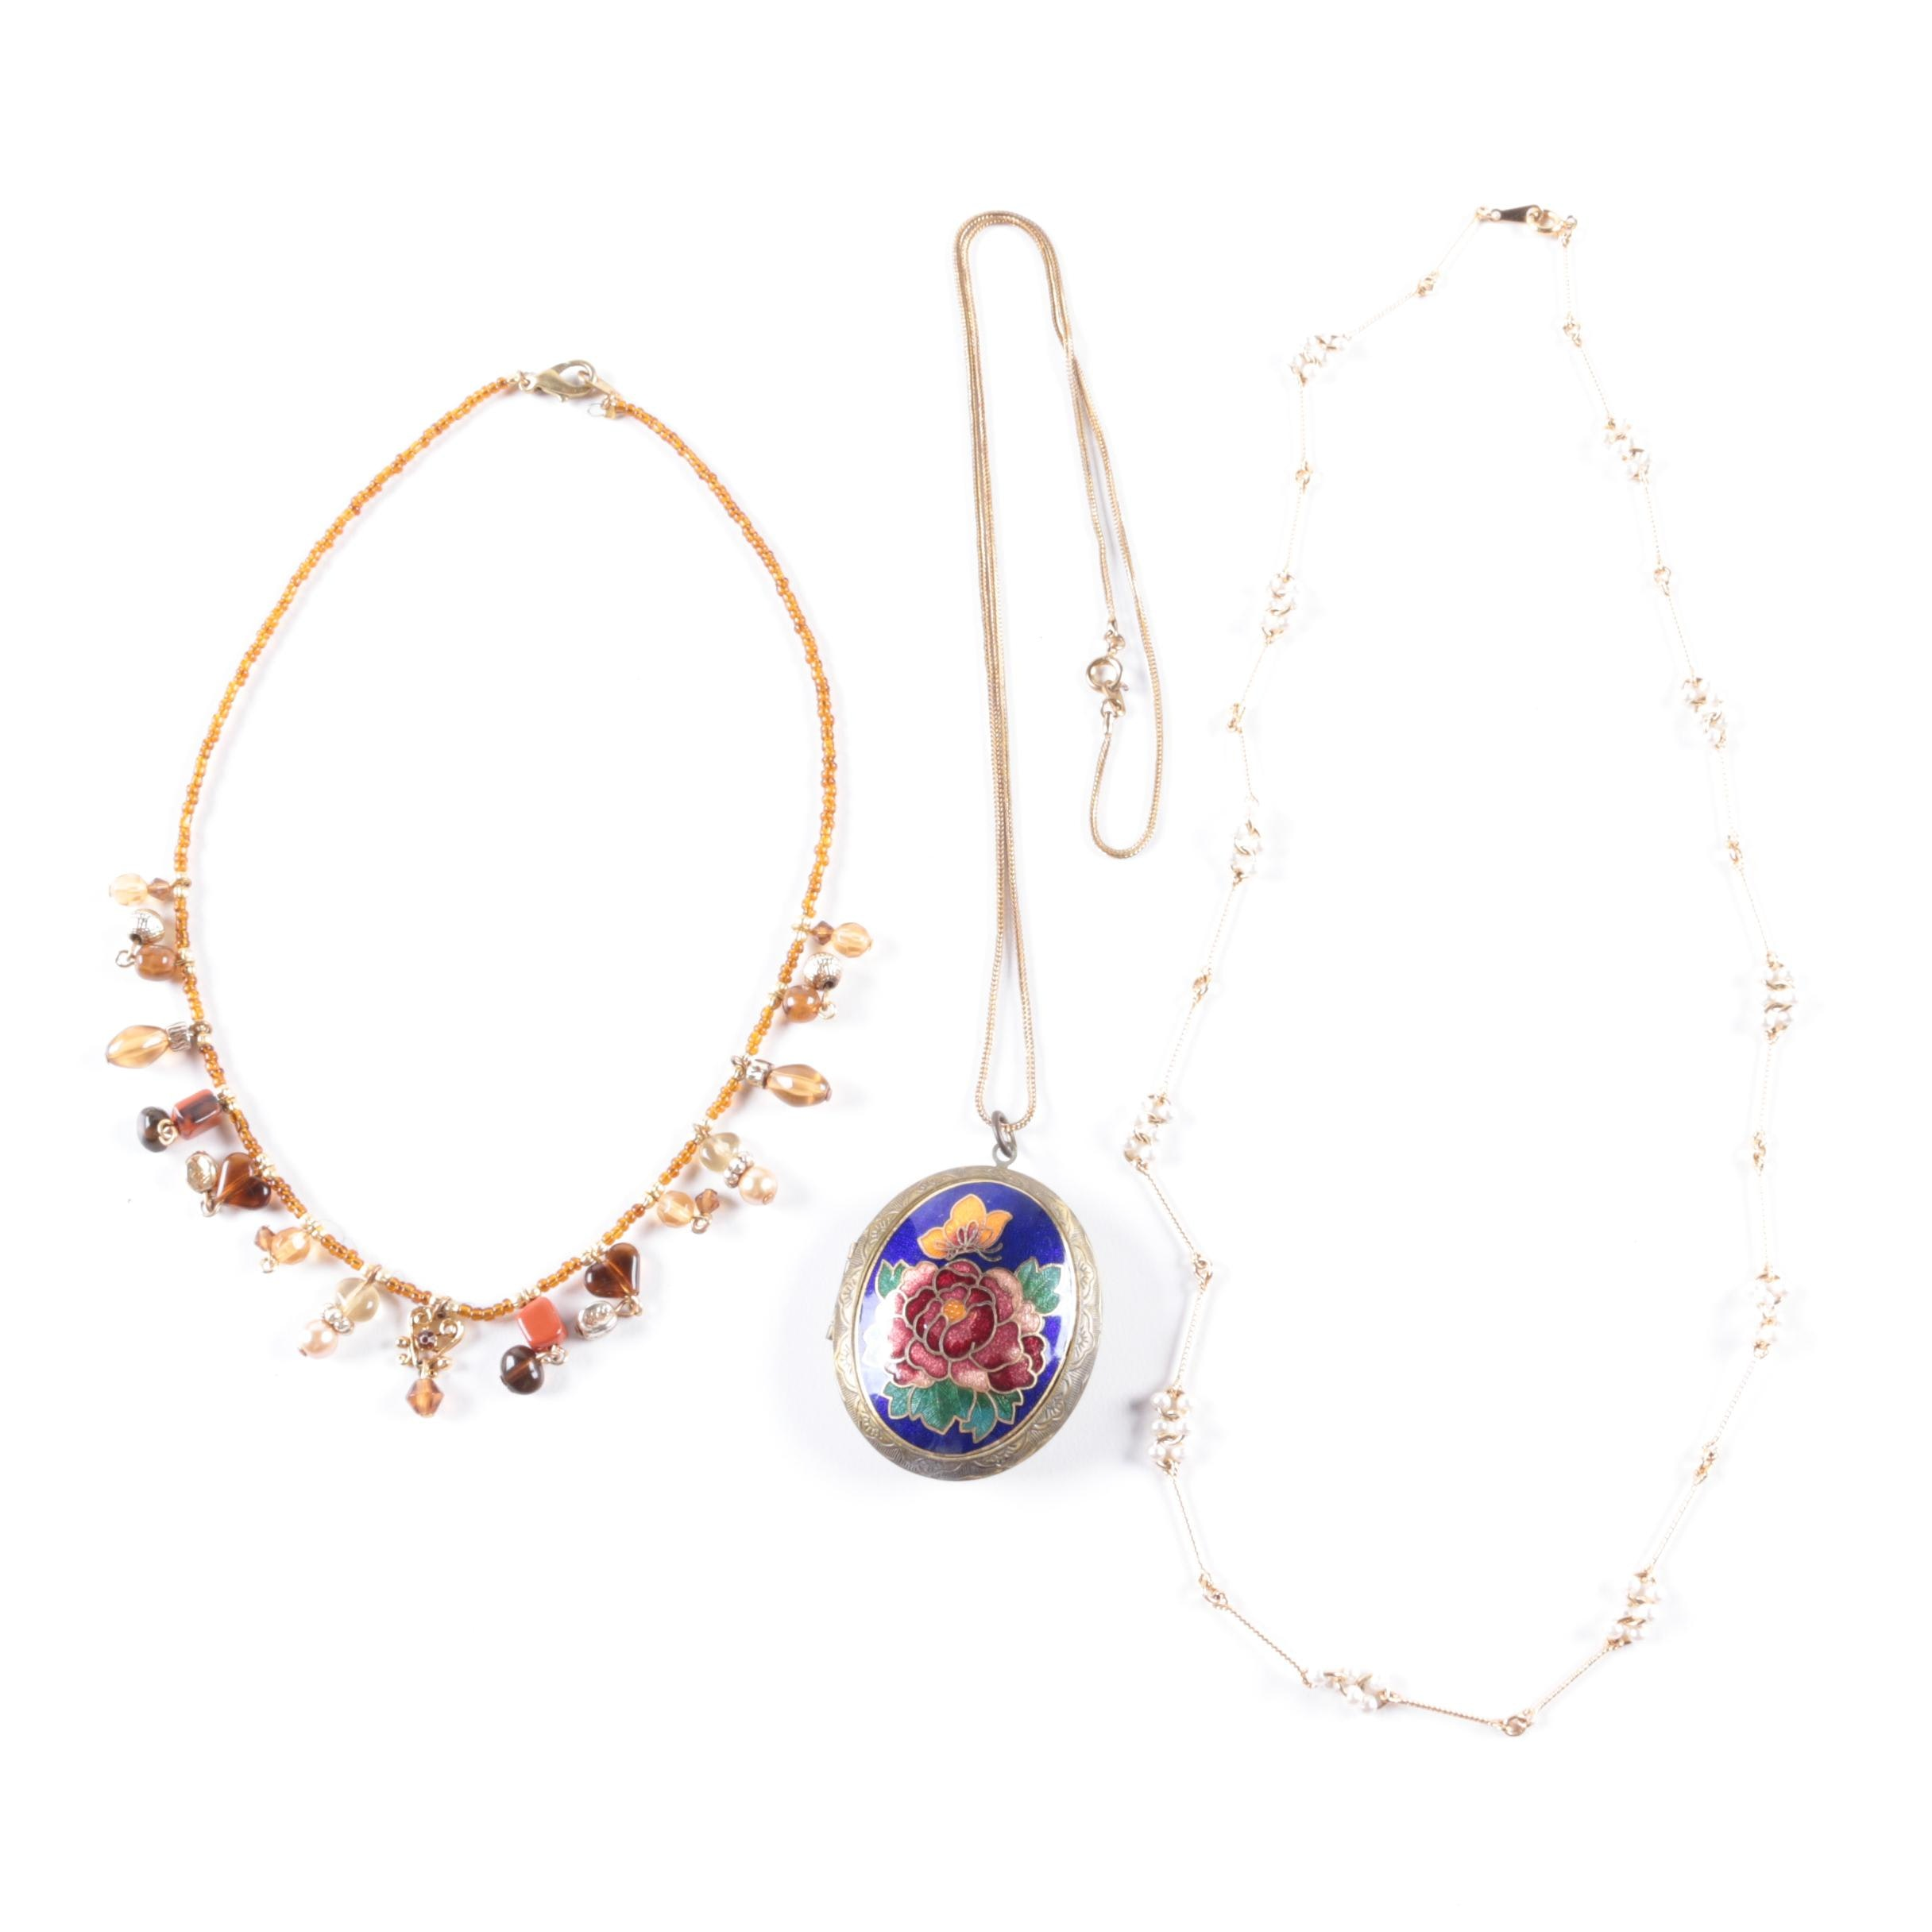 Cloisonne Locket and Other Costume Necklaces